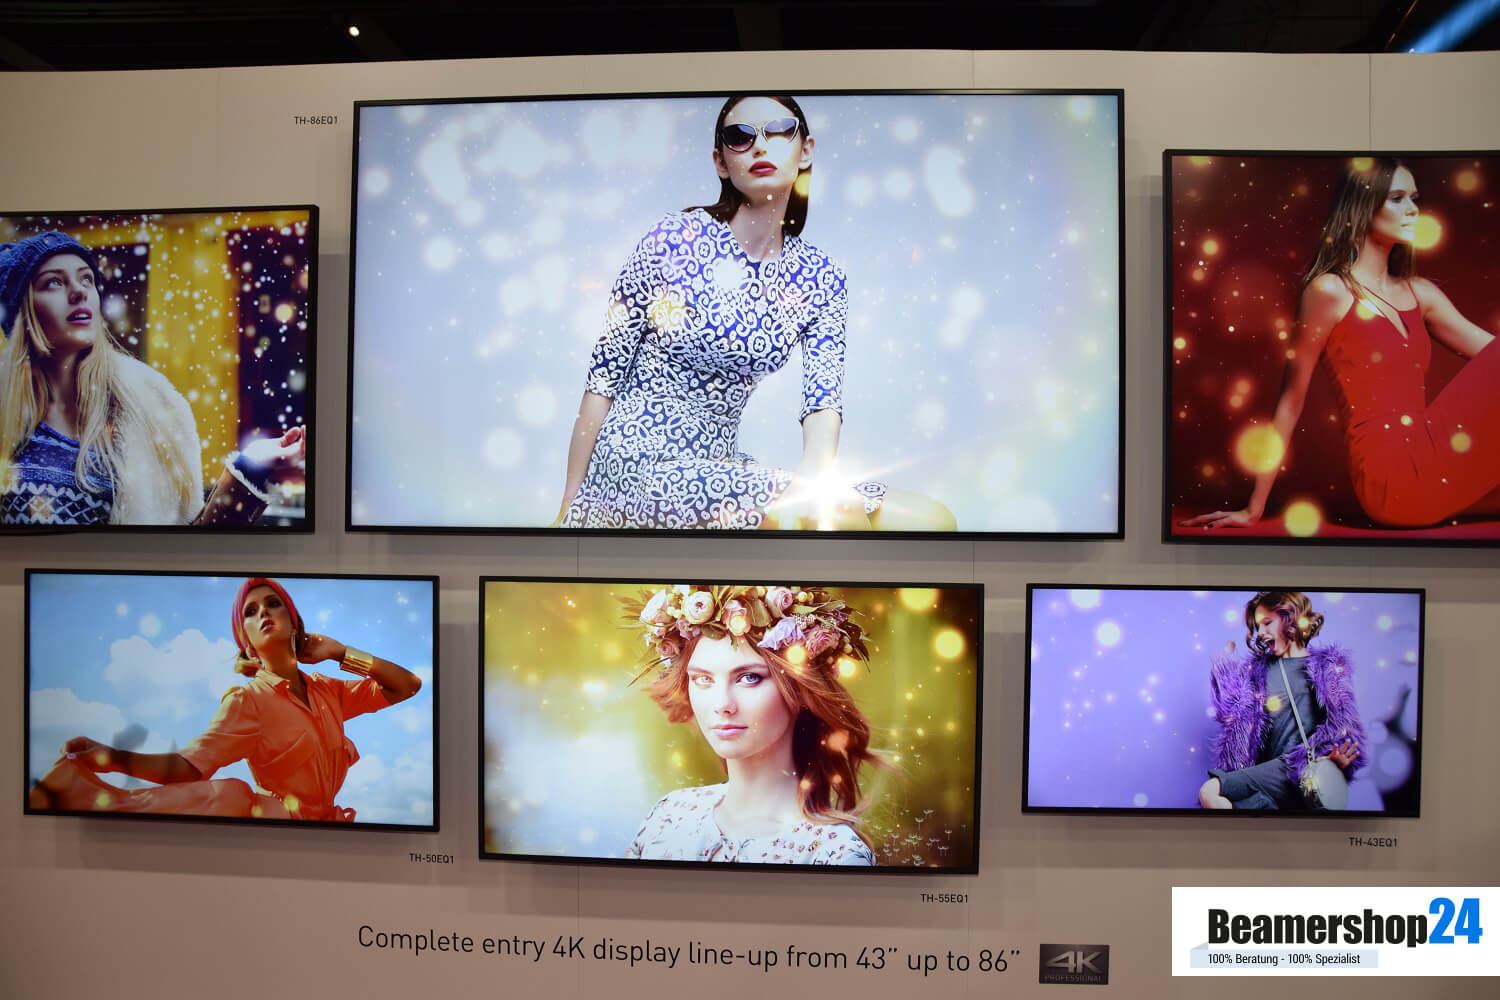 Panasonic ISE 2018 4K Displays